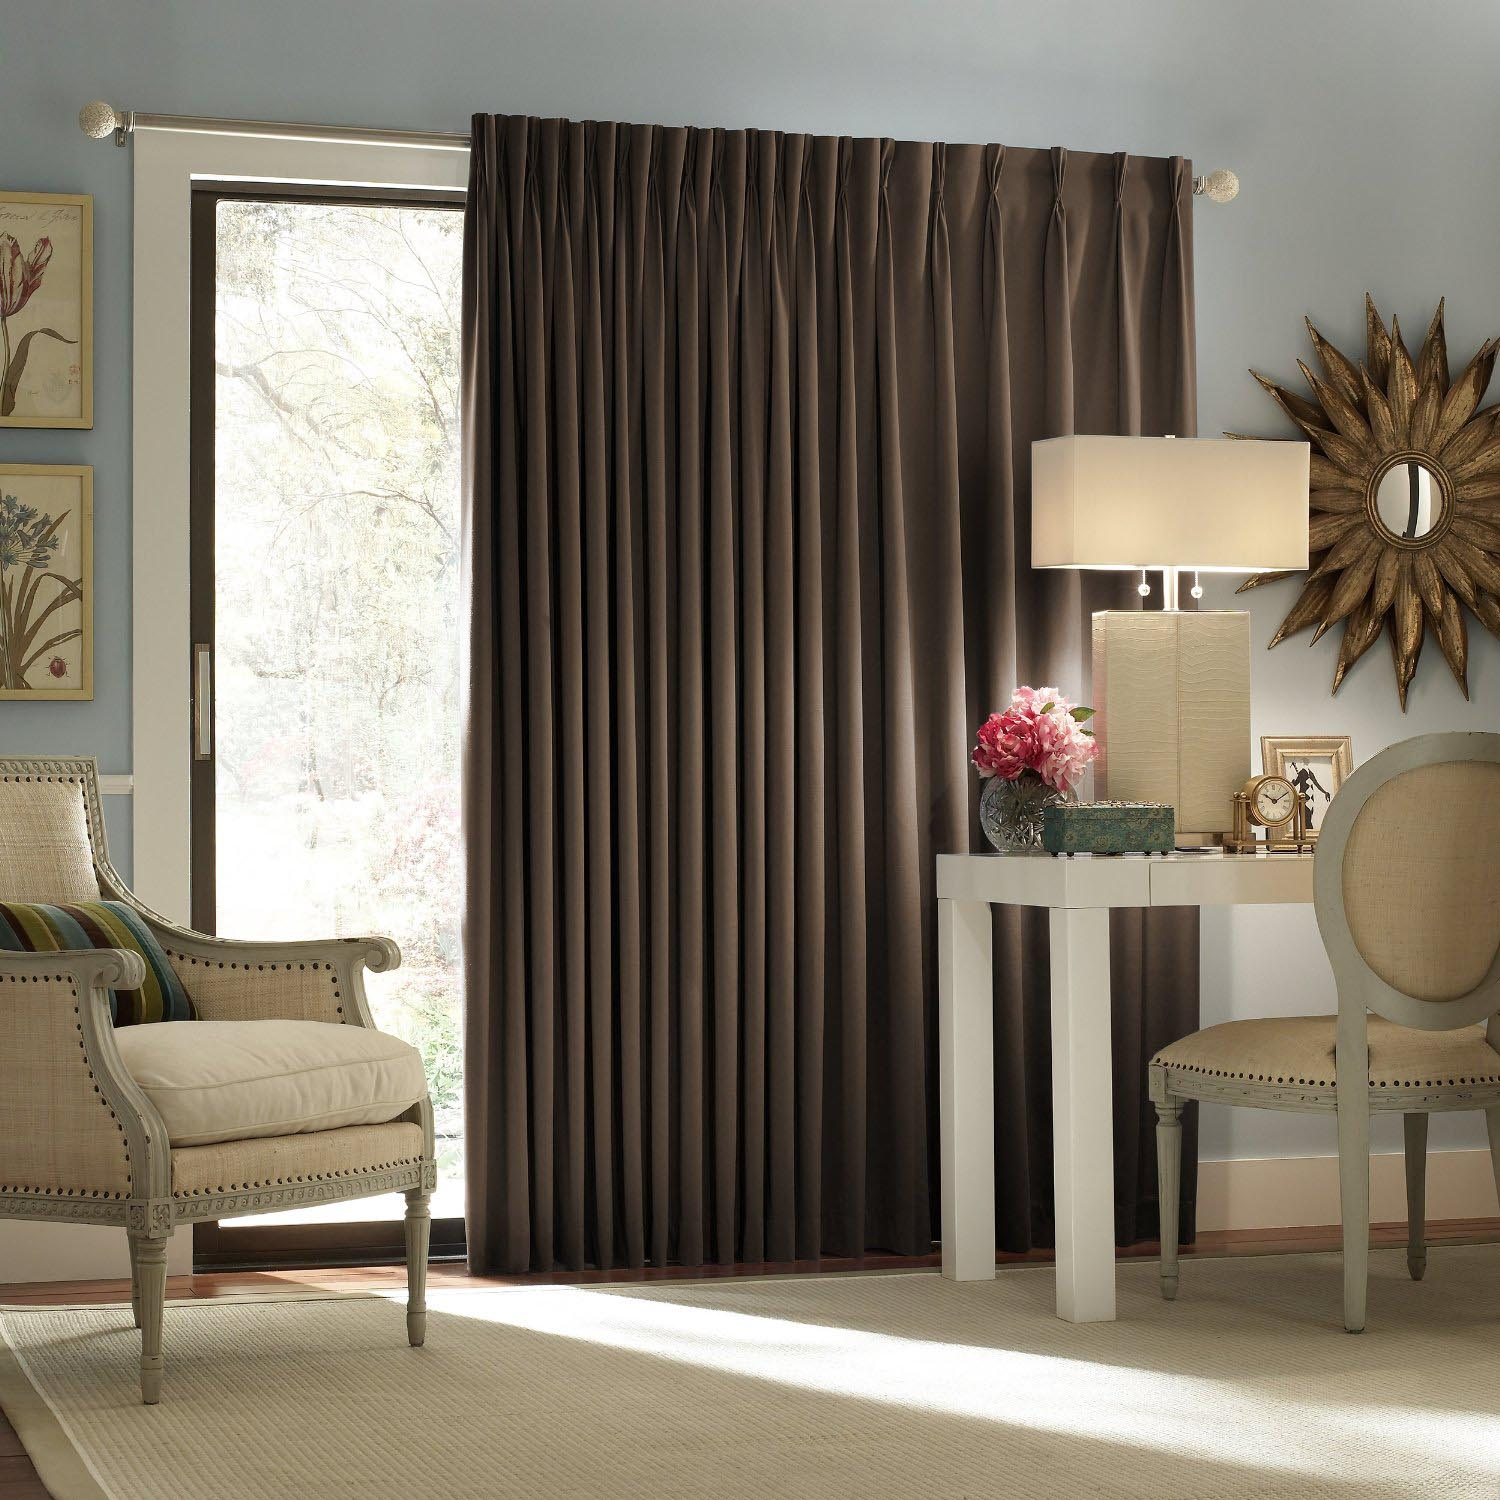 Blackout shades for sliding glass doors window for Room darkening window treatments ideas